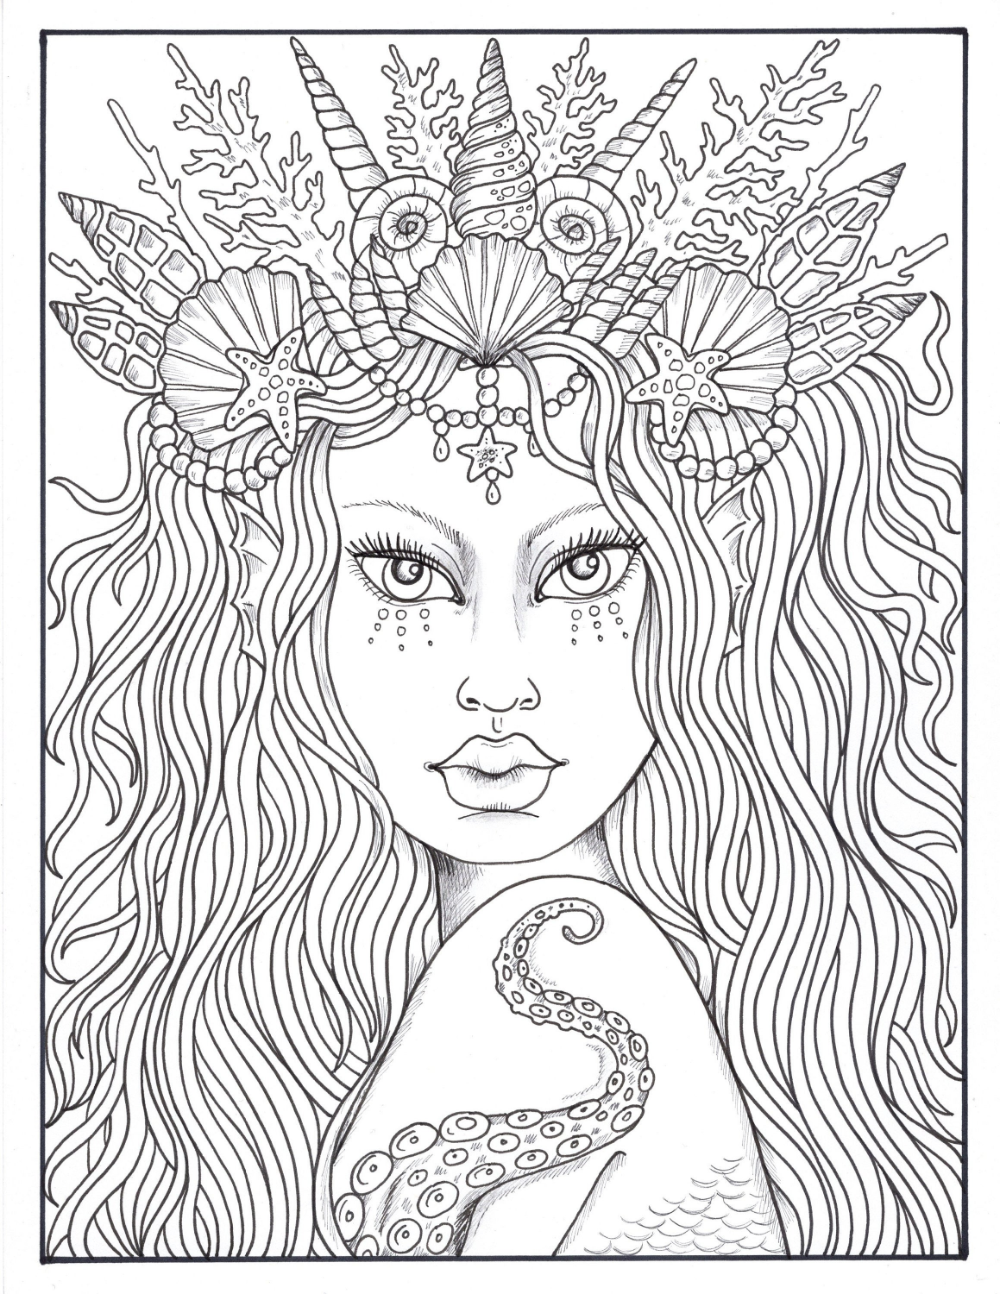 Mermaid Hair Queens of the Sea Digital Coloring mermaid ...